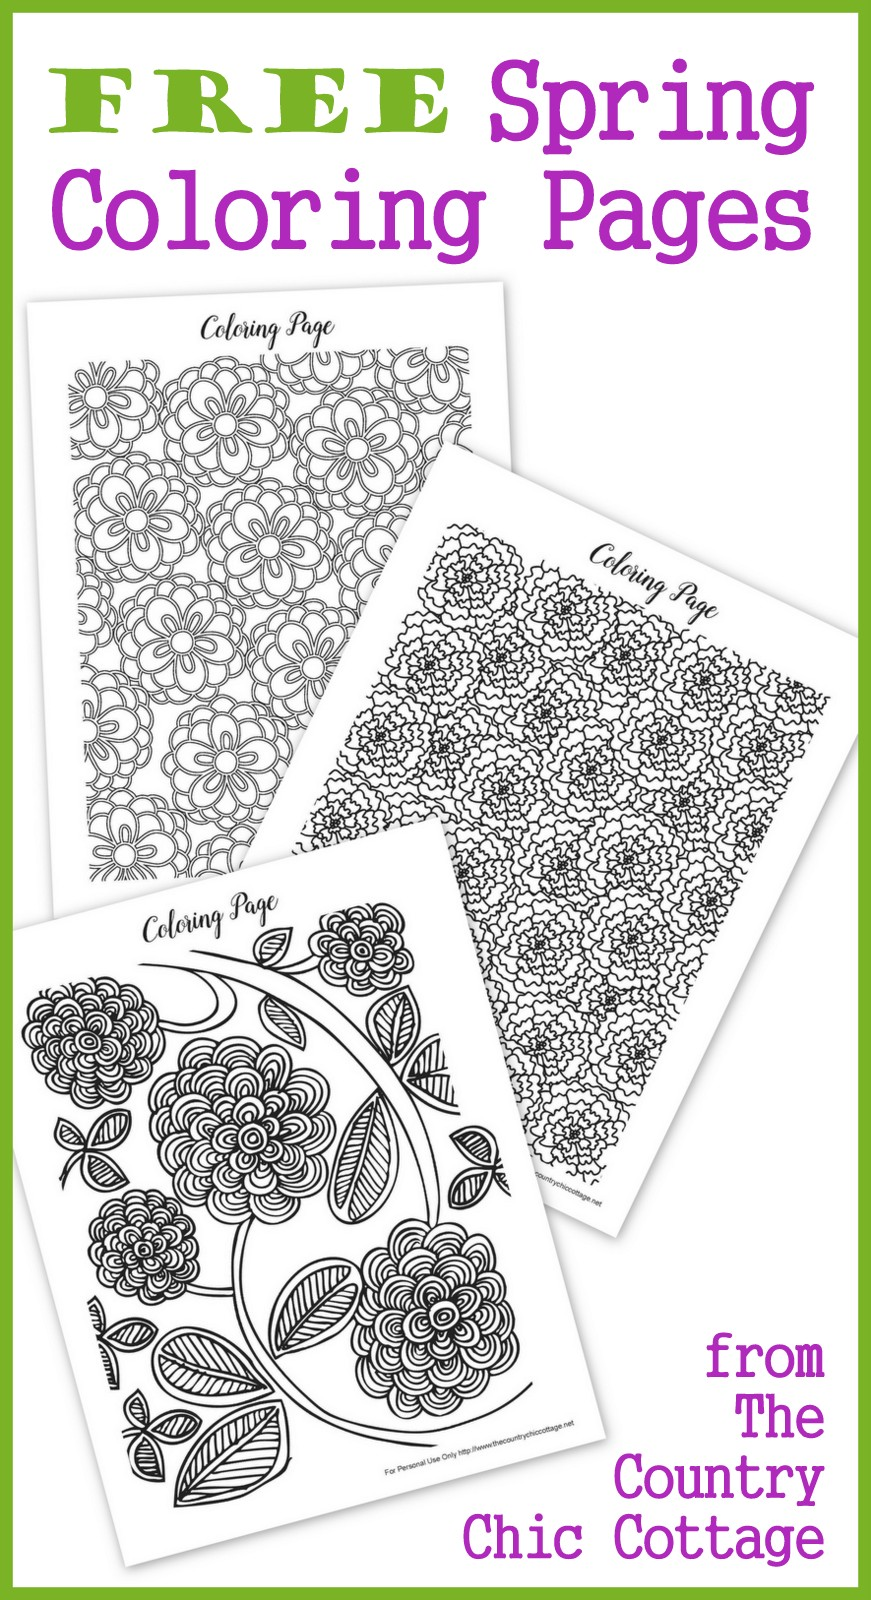 Free Spring Coloring Pages For Adults You Can Click On The Picture Of Each Page